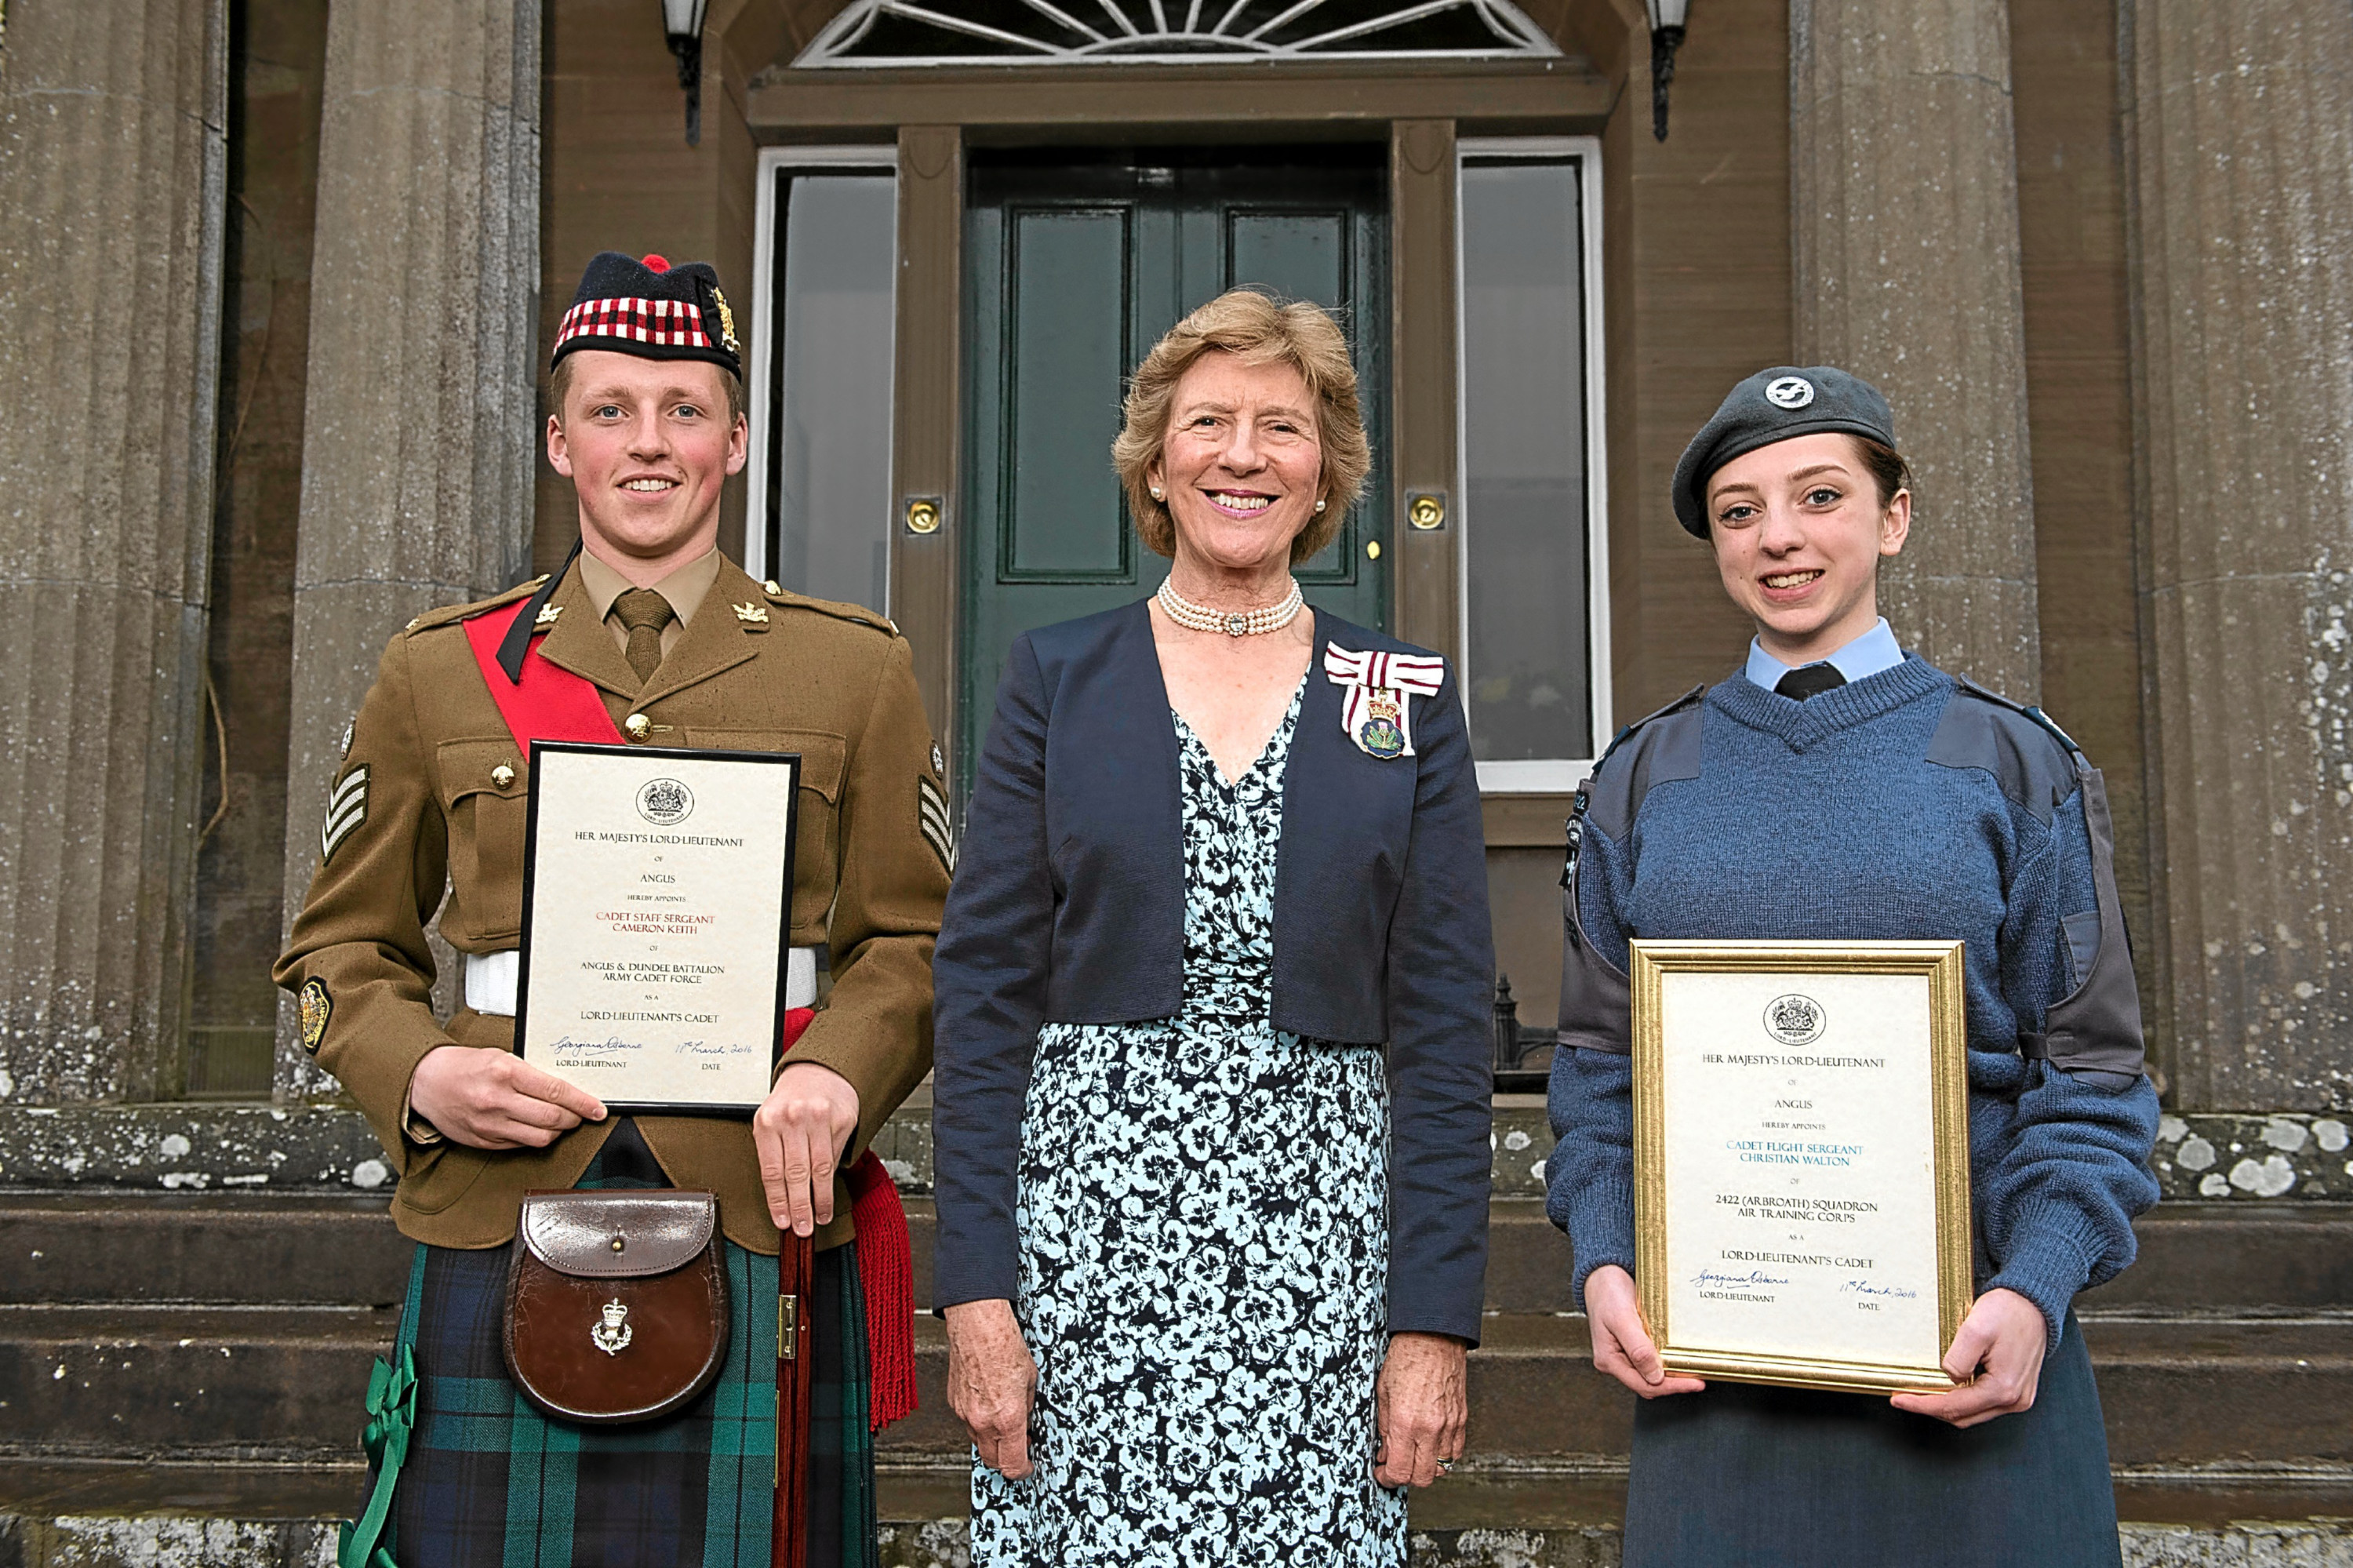 Staff Sergeant Cameron Keith from Forfar and Flight Sergeant Christian Walton from Arbroath were presented with their certificates by Georgiana Osbourne.